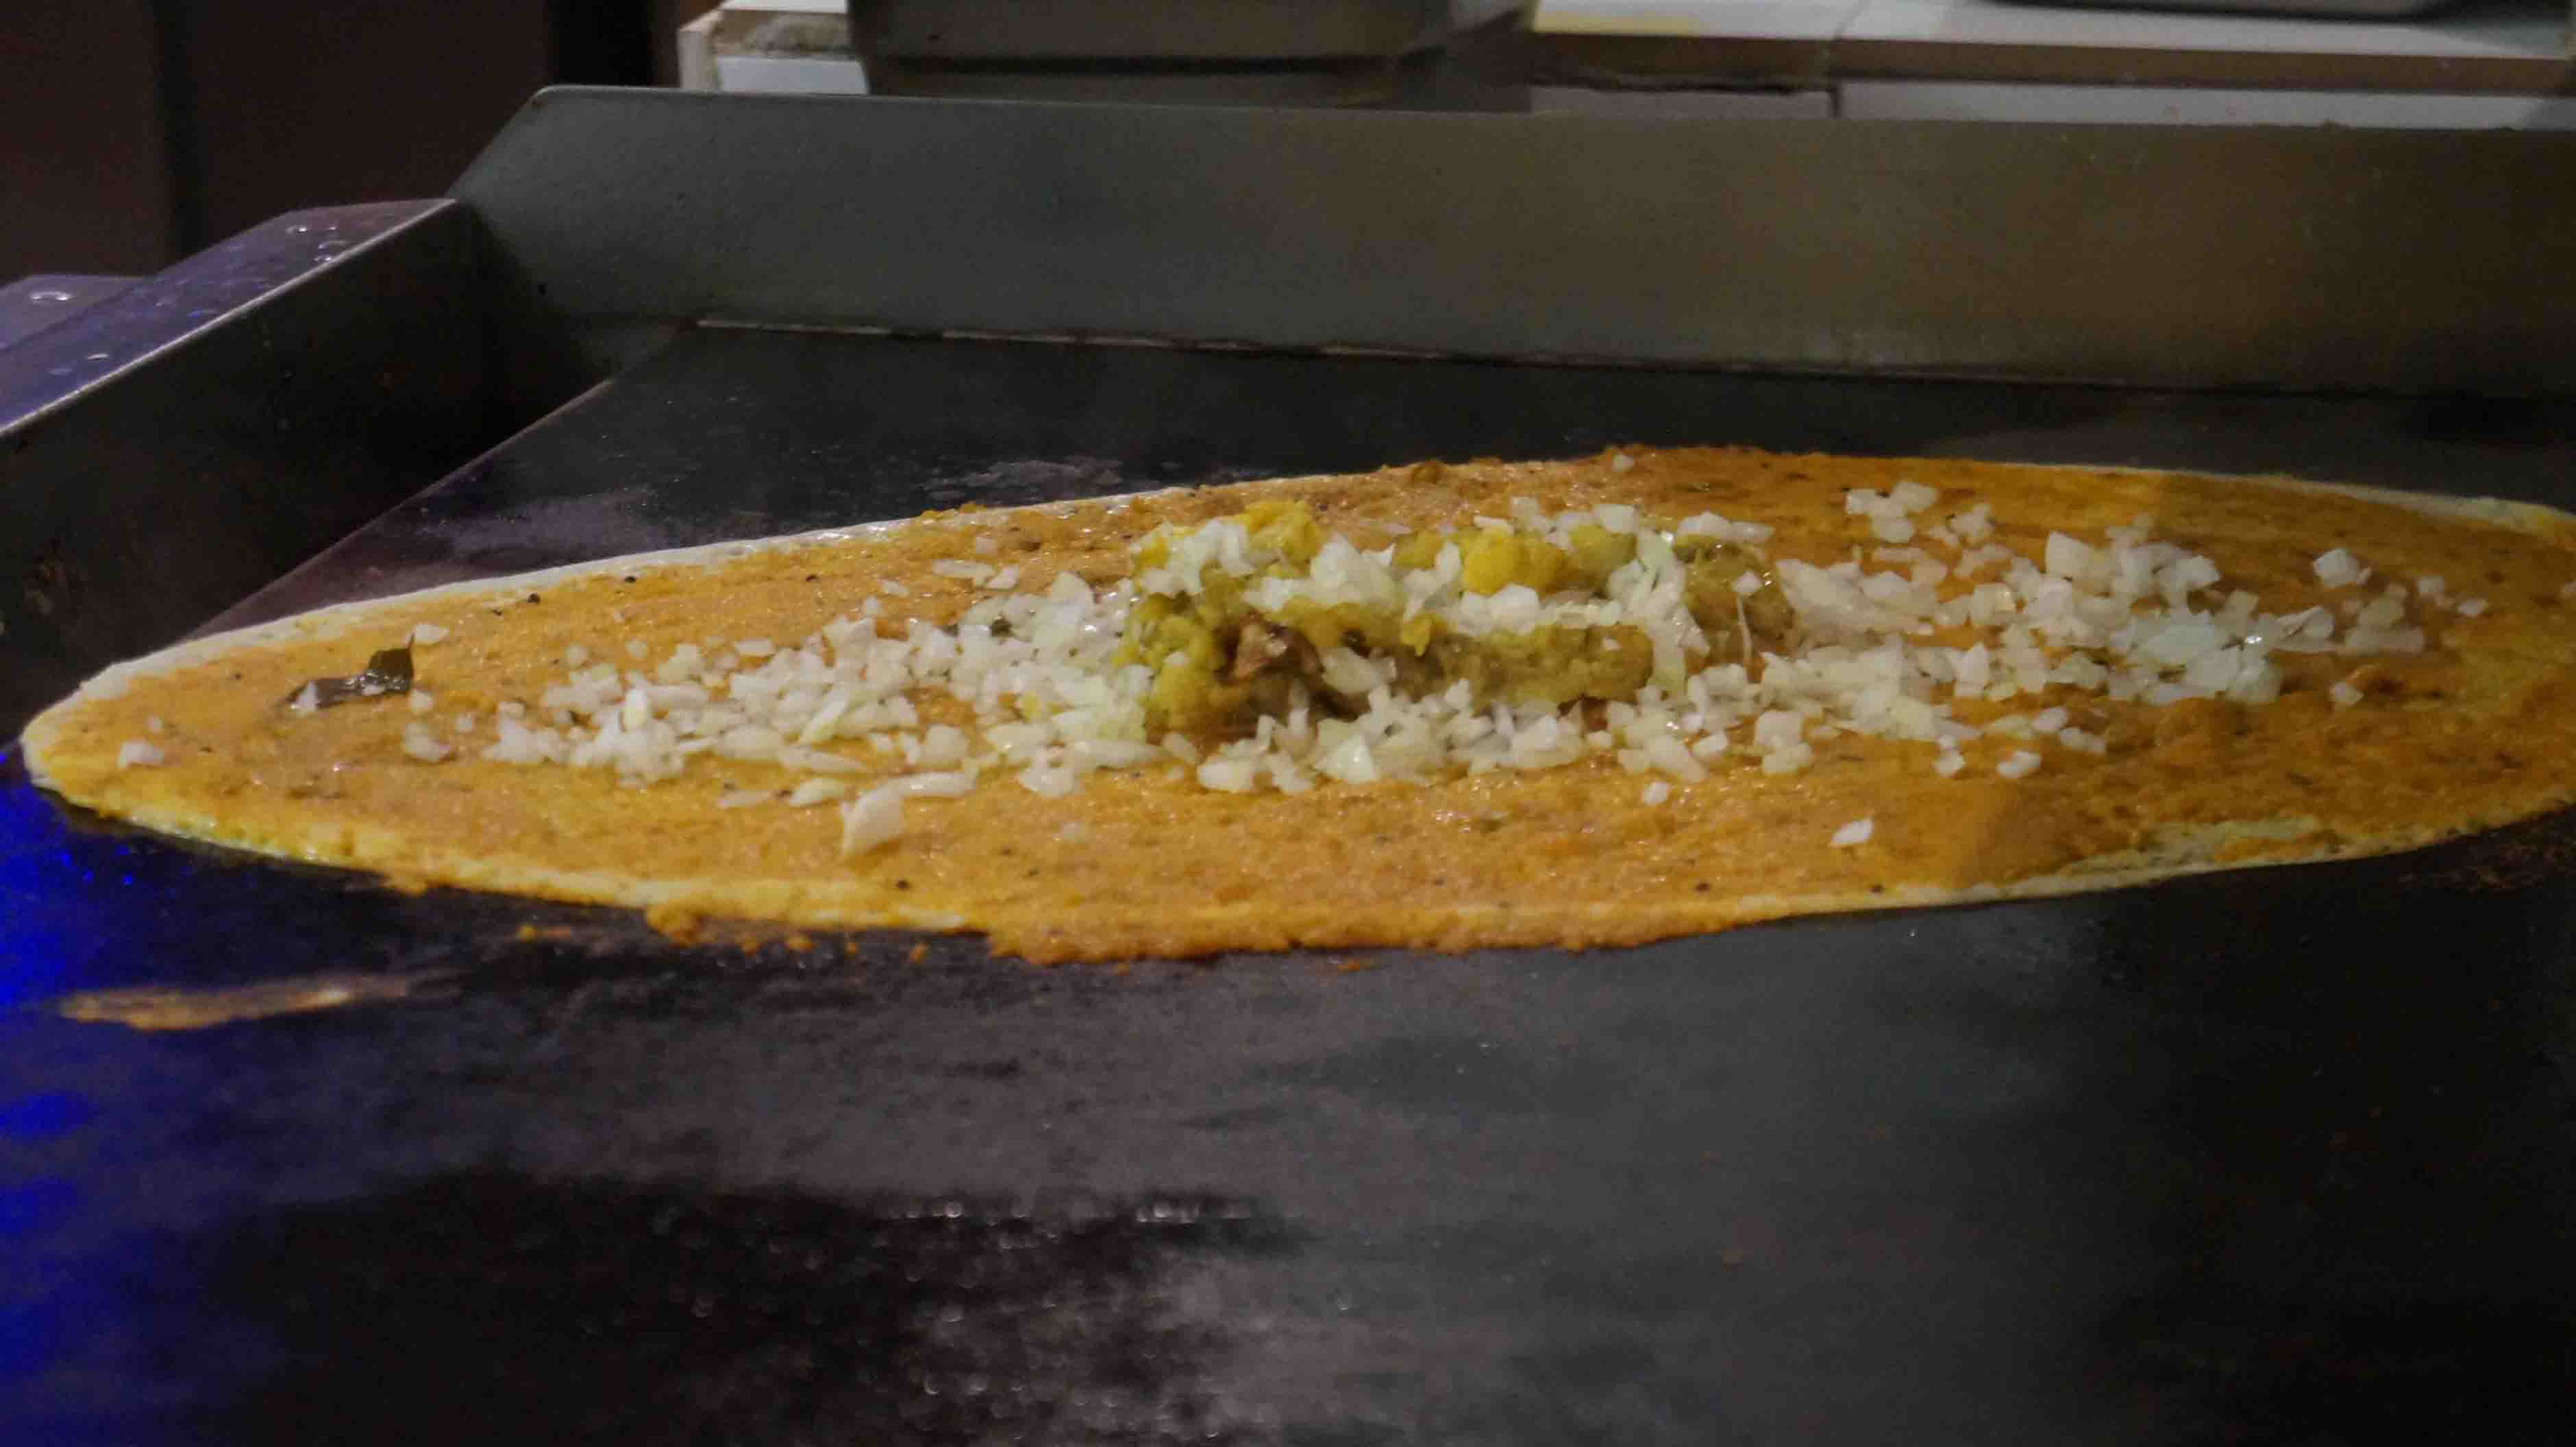 Dosa in Making